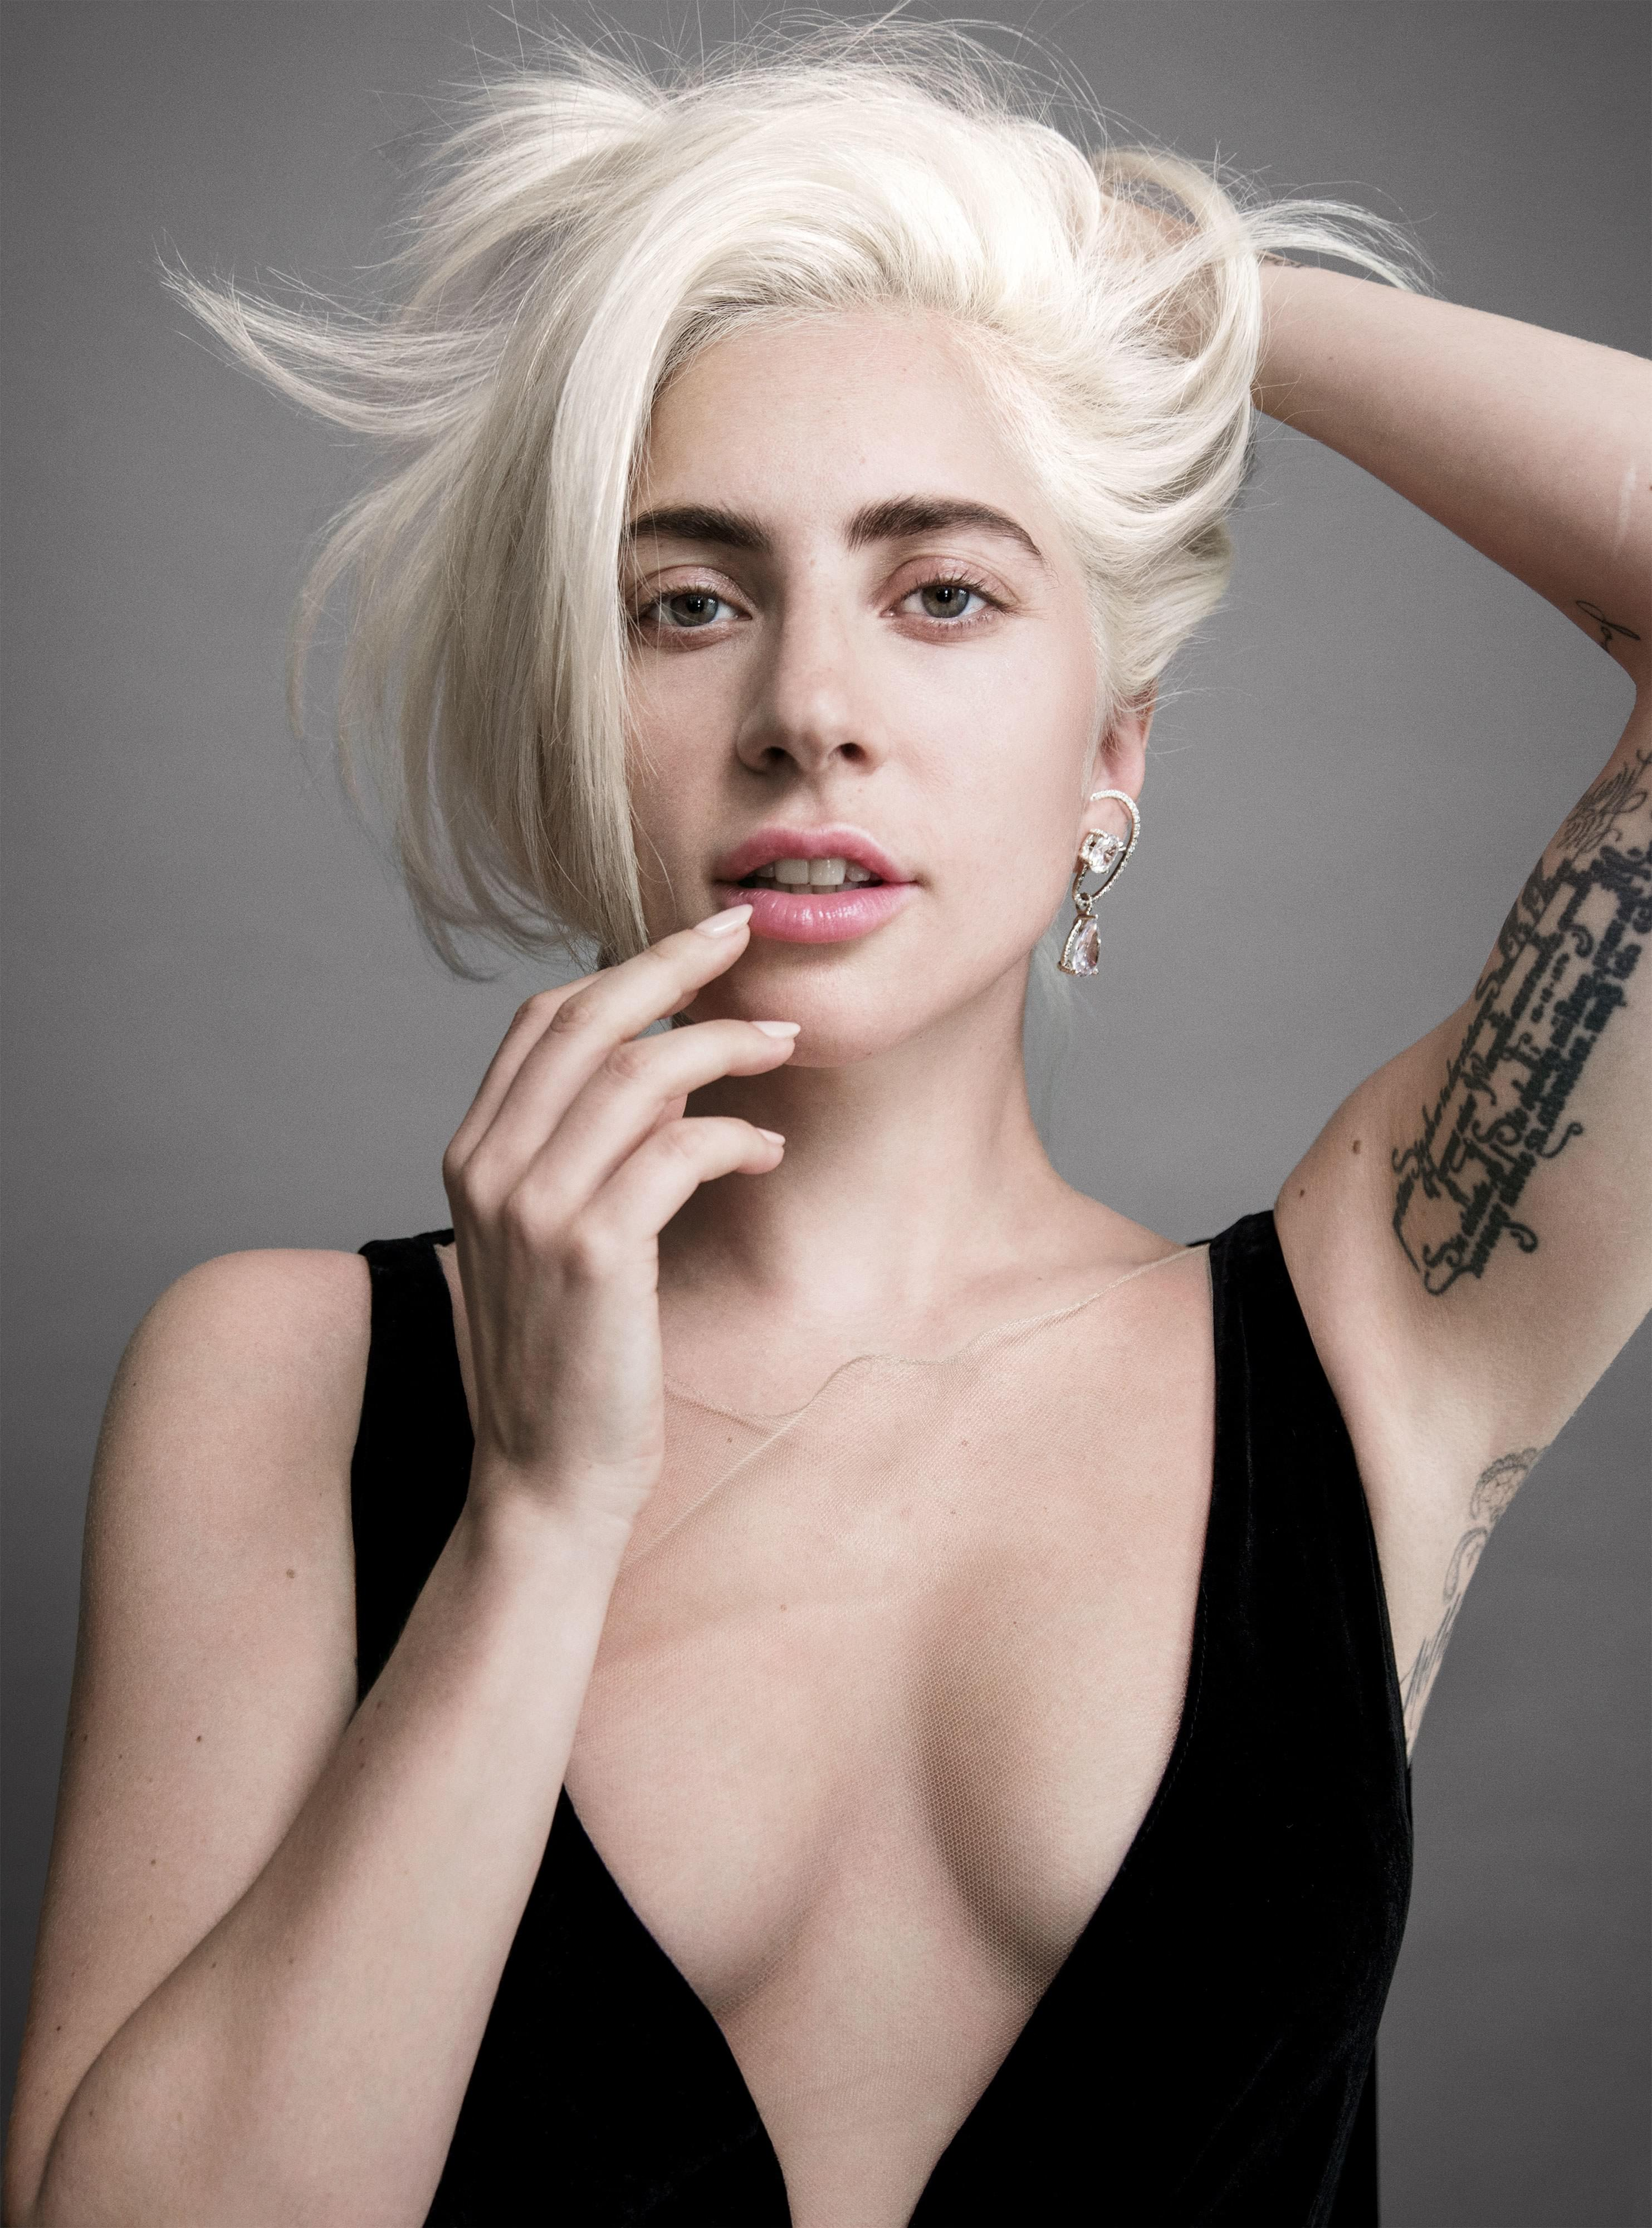 Lady Gaga Graces October Cover of Vogue and Talks Movie Role and New Music Coming Soon